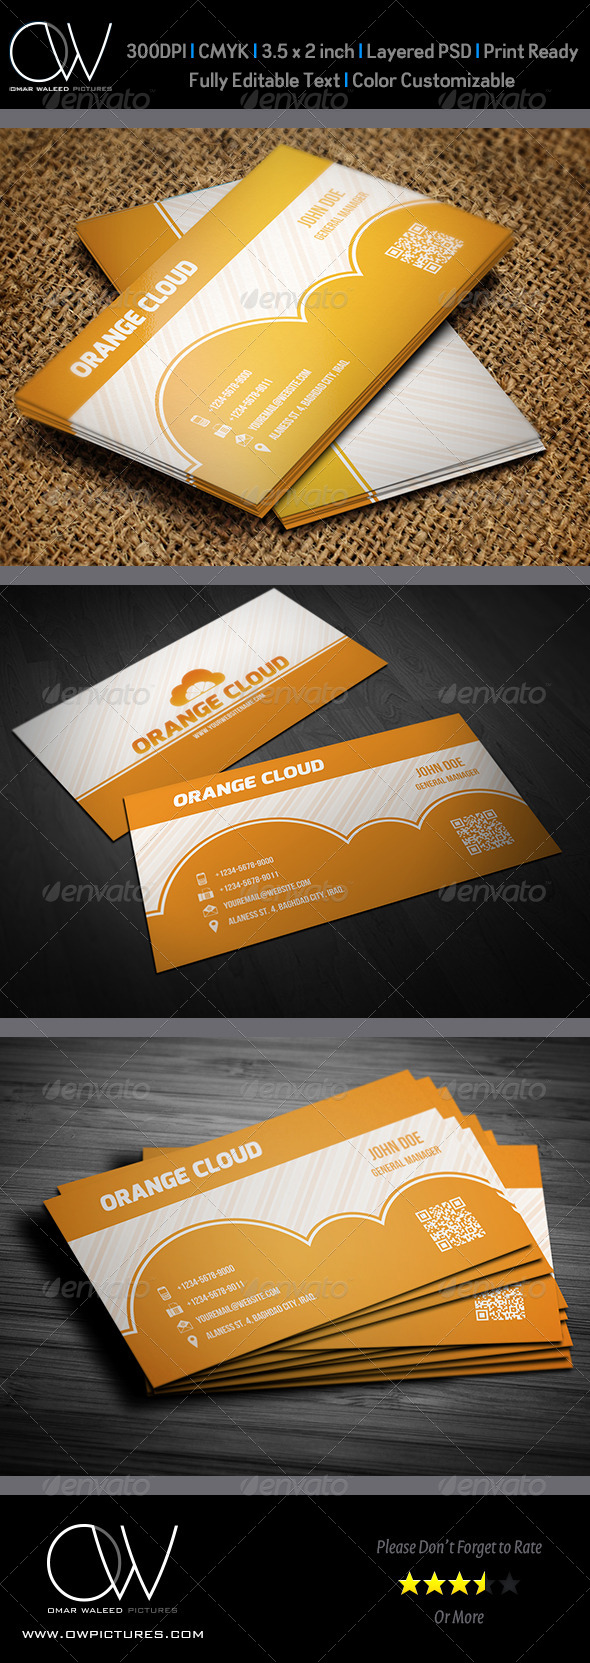 Orange Cloud Business Card - Business Cards Print Templates